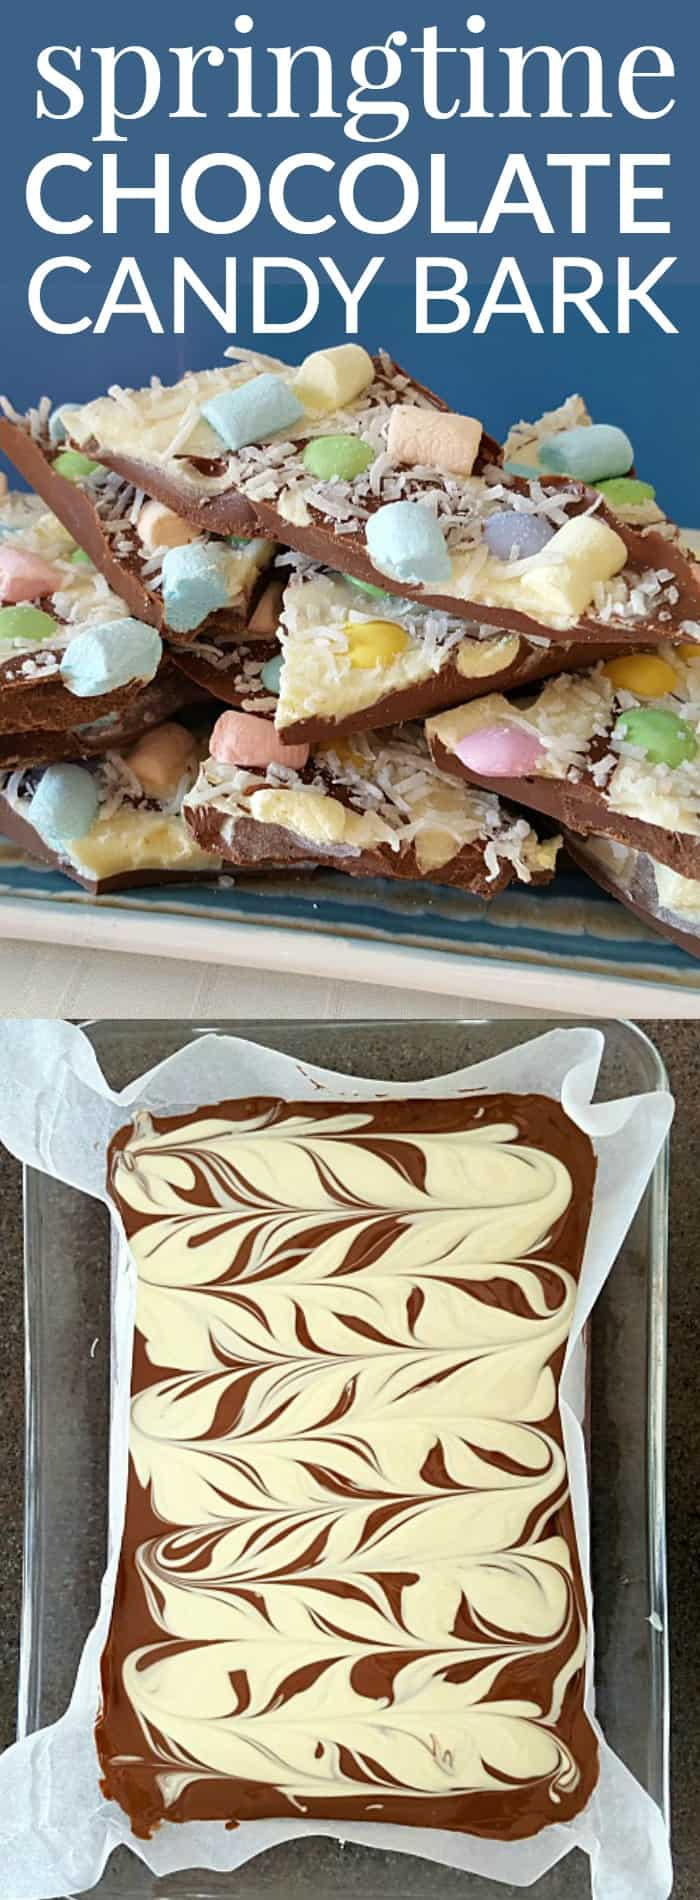 This springtime chocolate candy bark is easy to make and tastes so yummy.